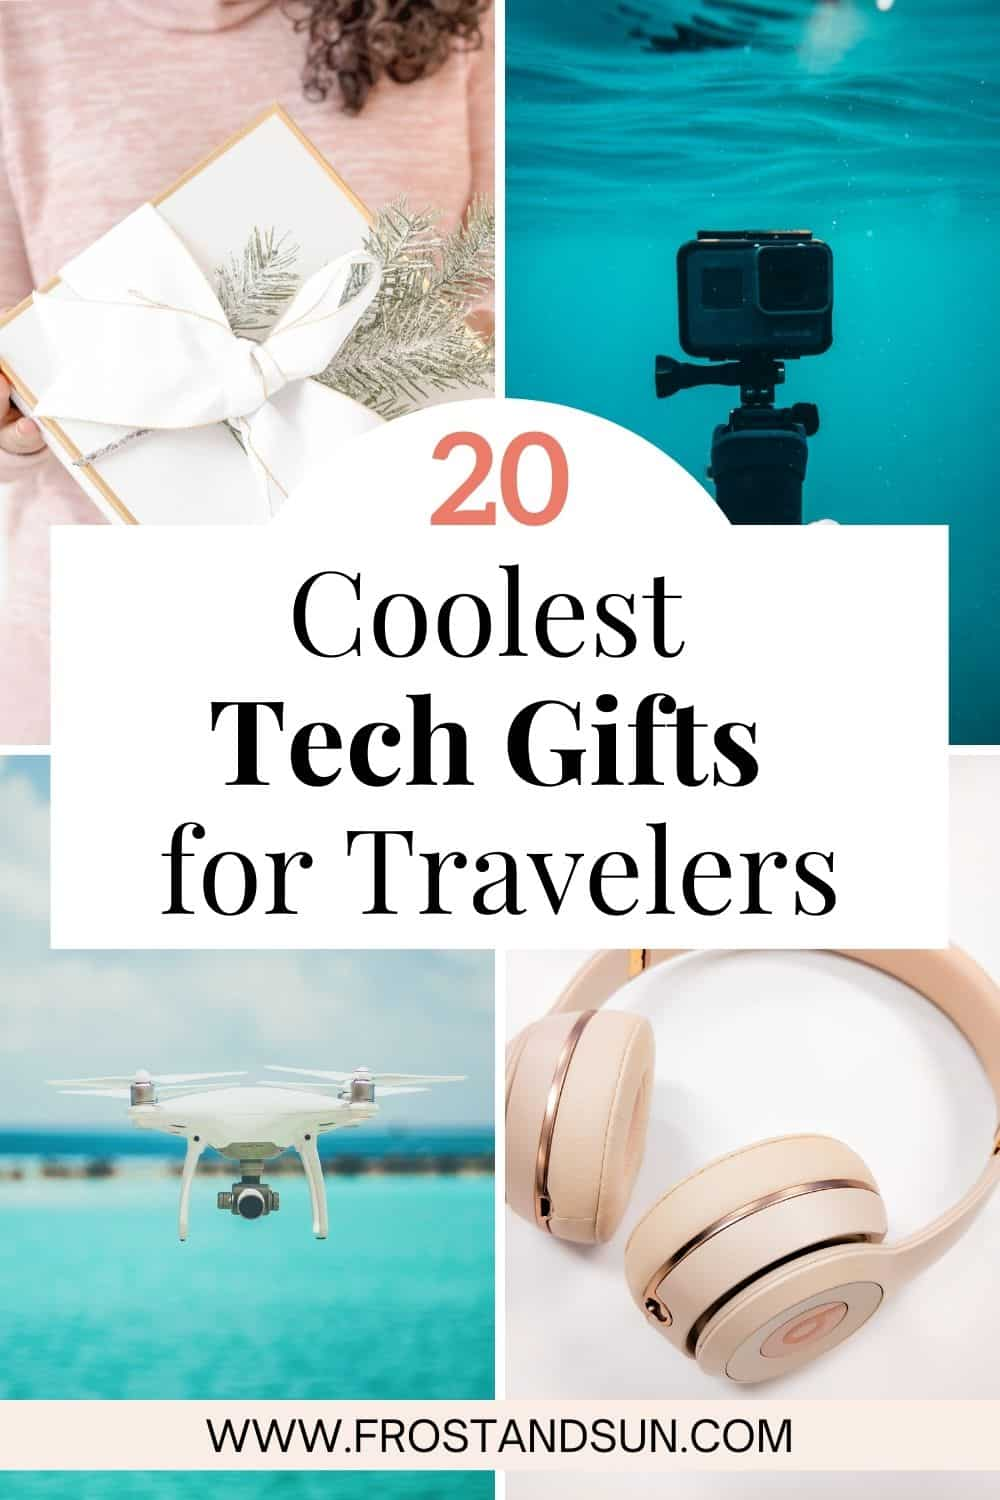 20 Coolest Travel Tech Gifts for 2021